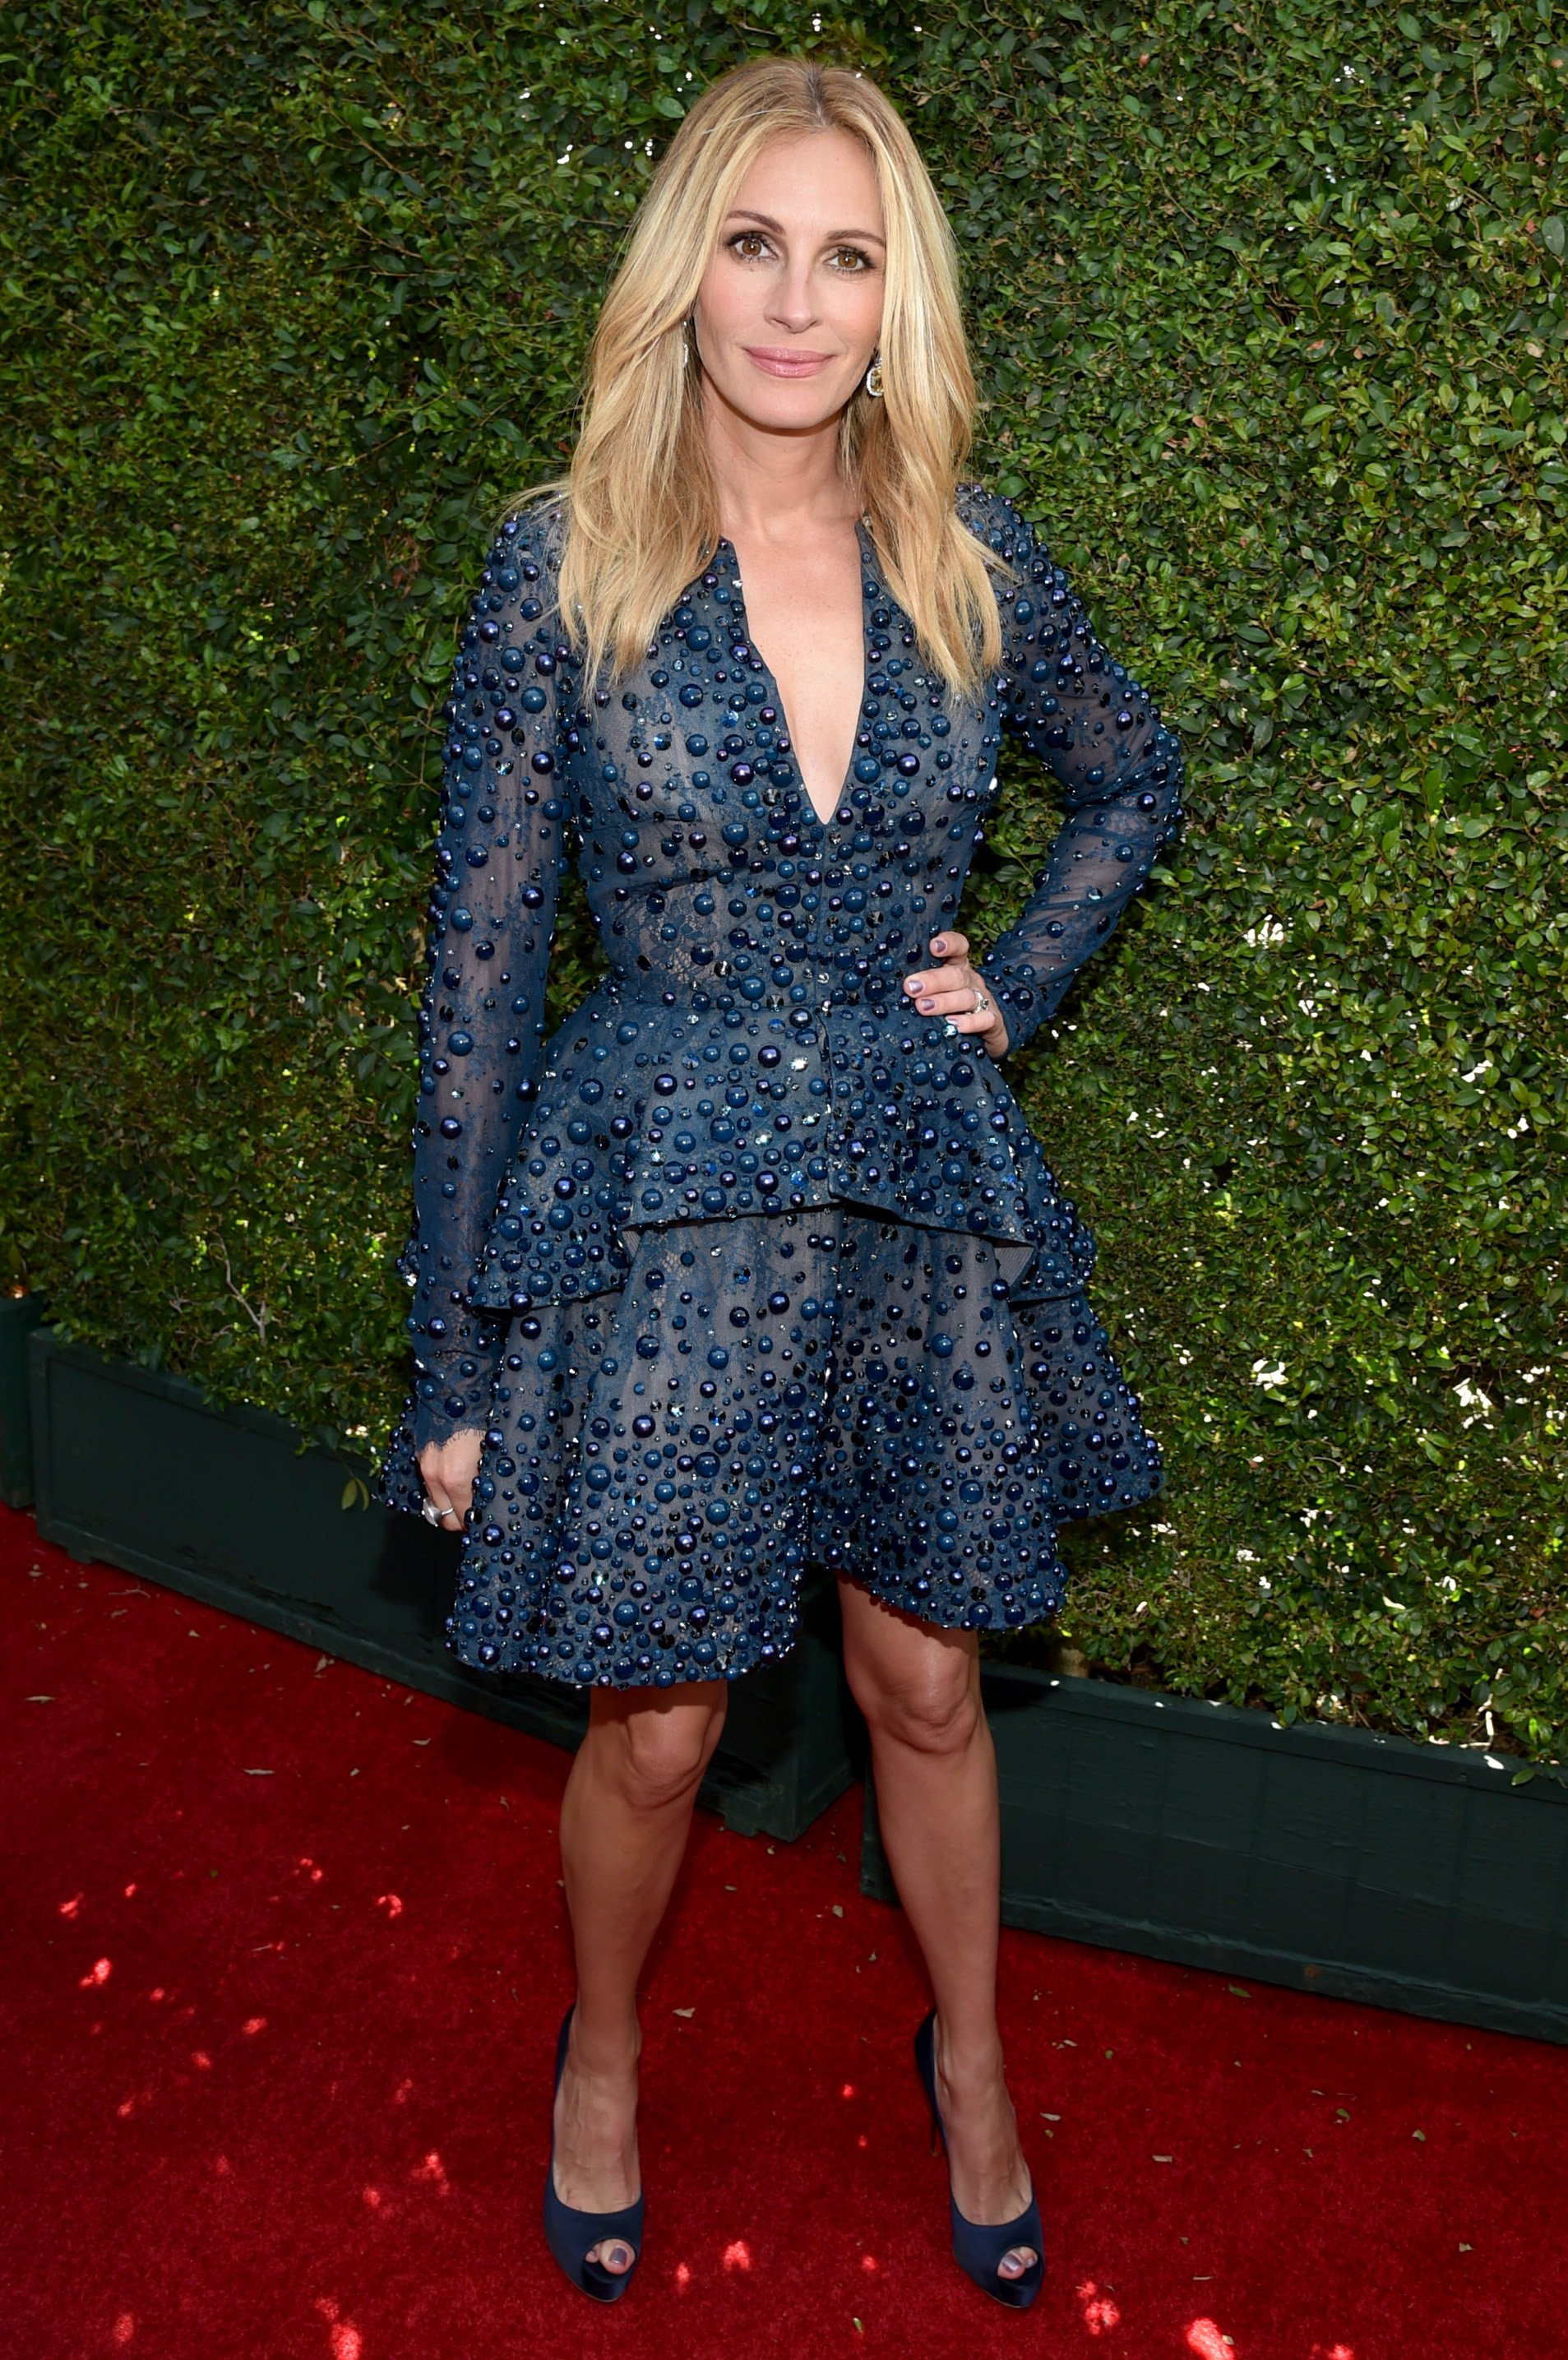 Julia Roberts arrives at the 66th Primetime Emmy Awards at the Nokia Theatre L.A. Live on Monday, Aug. 25, 2014, in Los Angeles.